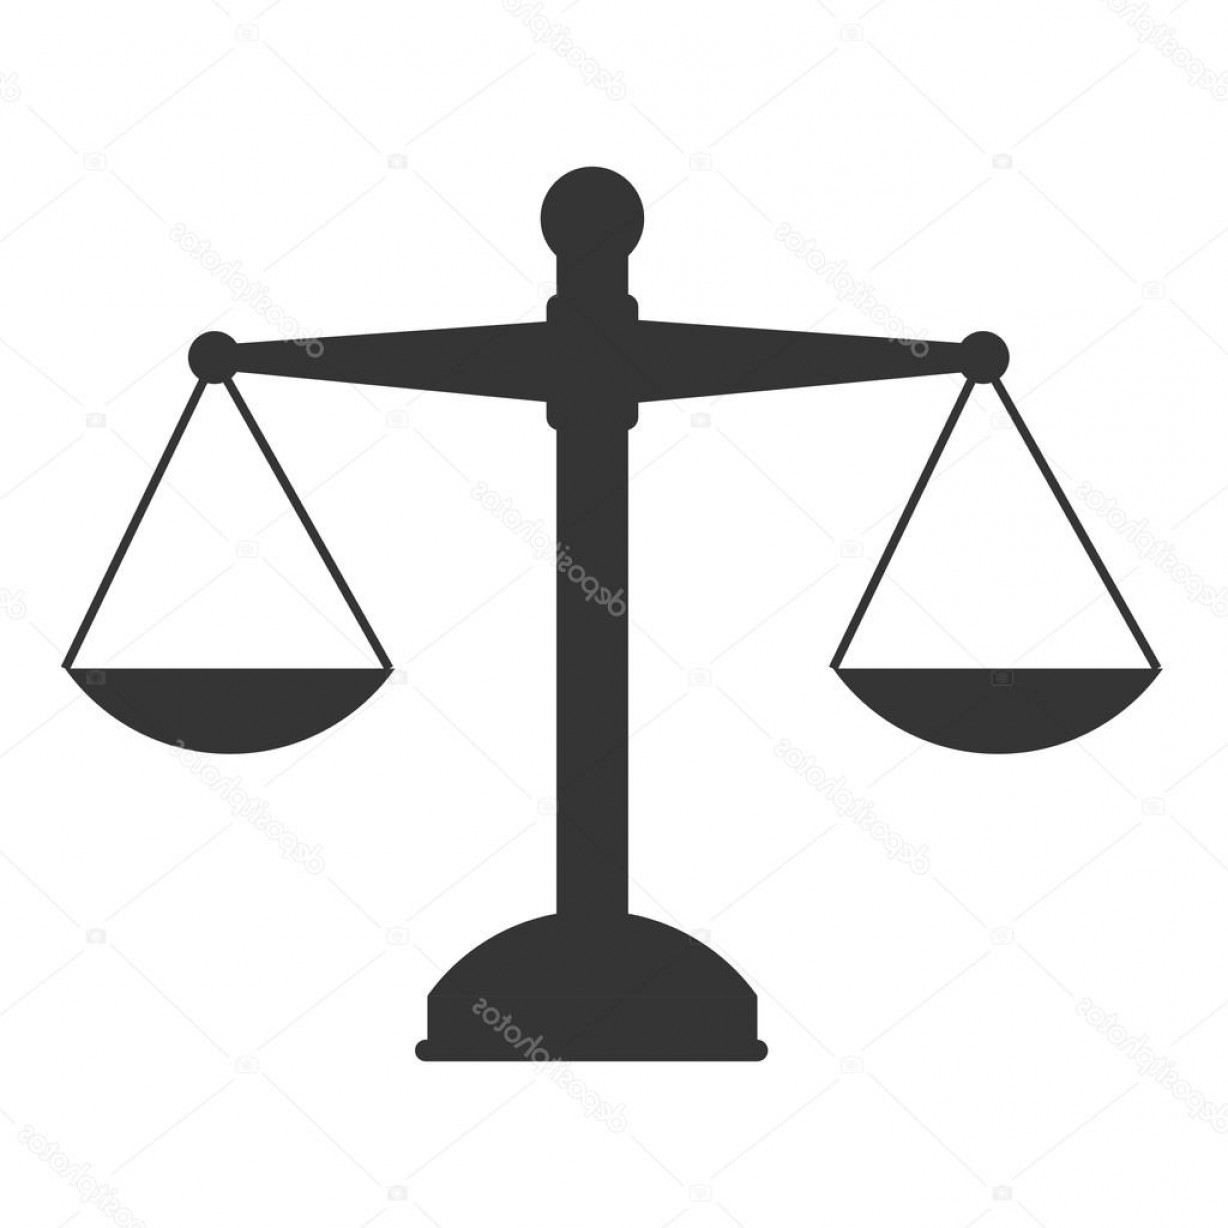 Lawyer Scale Vector: Stock Illustration Scale Law Weight Vector Graphic